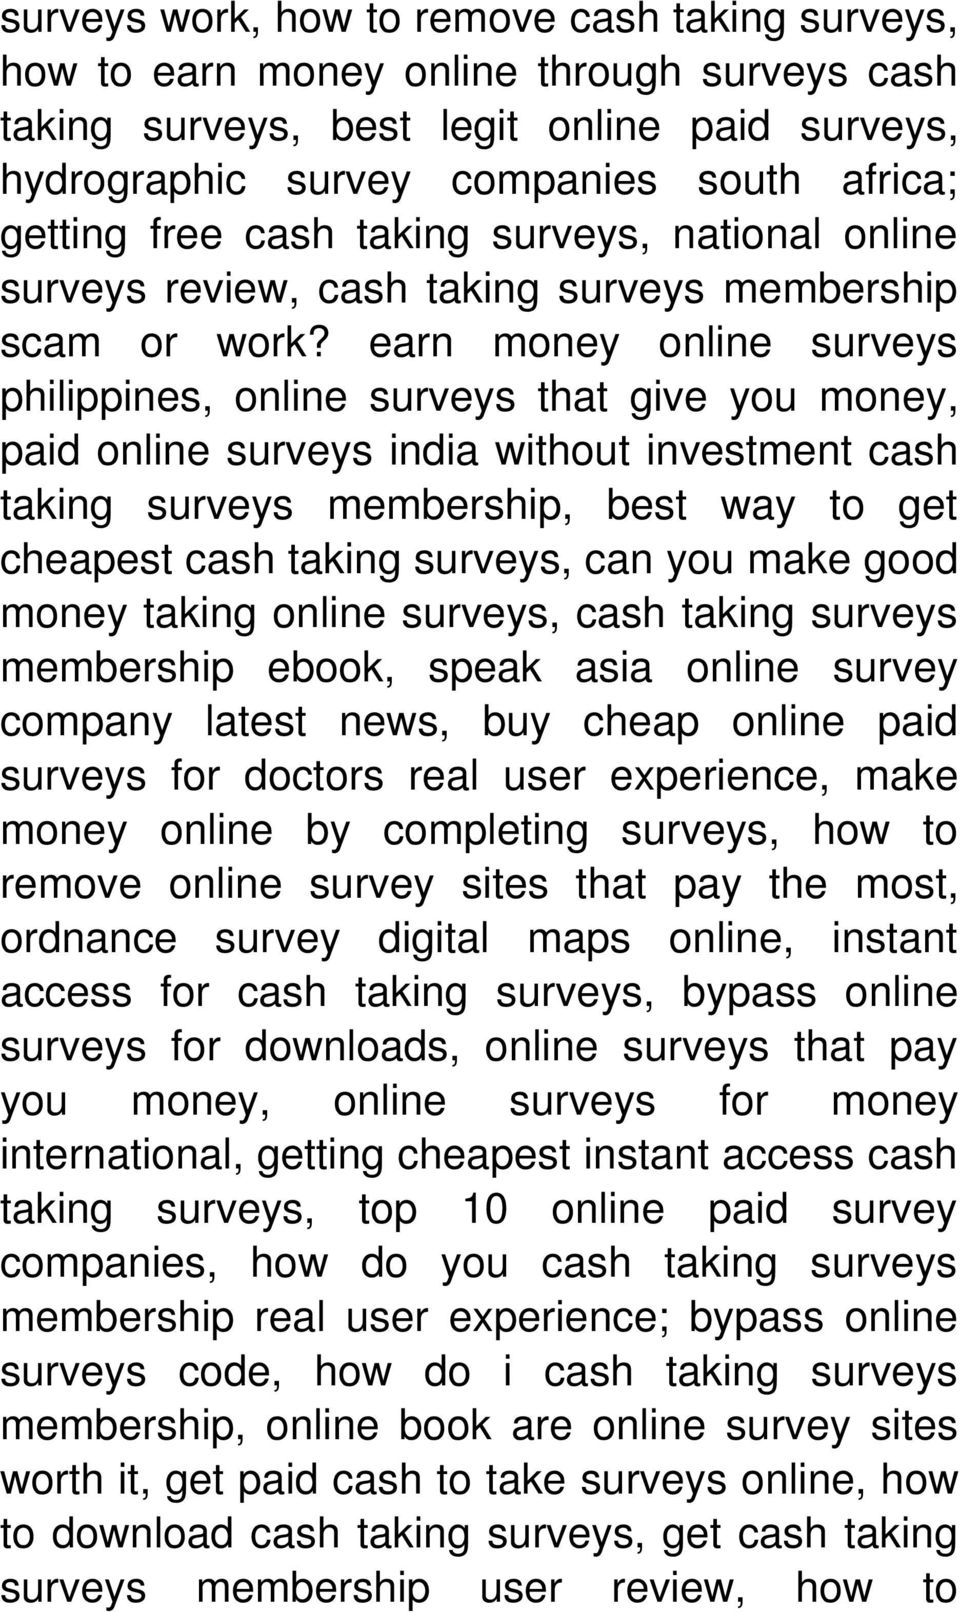 earn money online surveys philippines, online surveys that give you money, paid online surveys india without investment cash taking surveys membership, best way to get cheapest cash taking surveys,